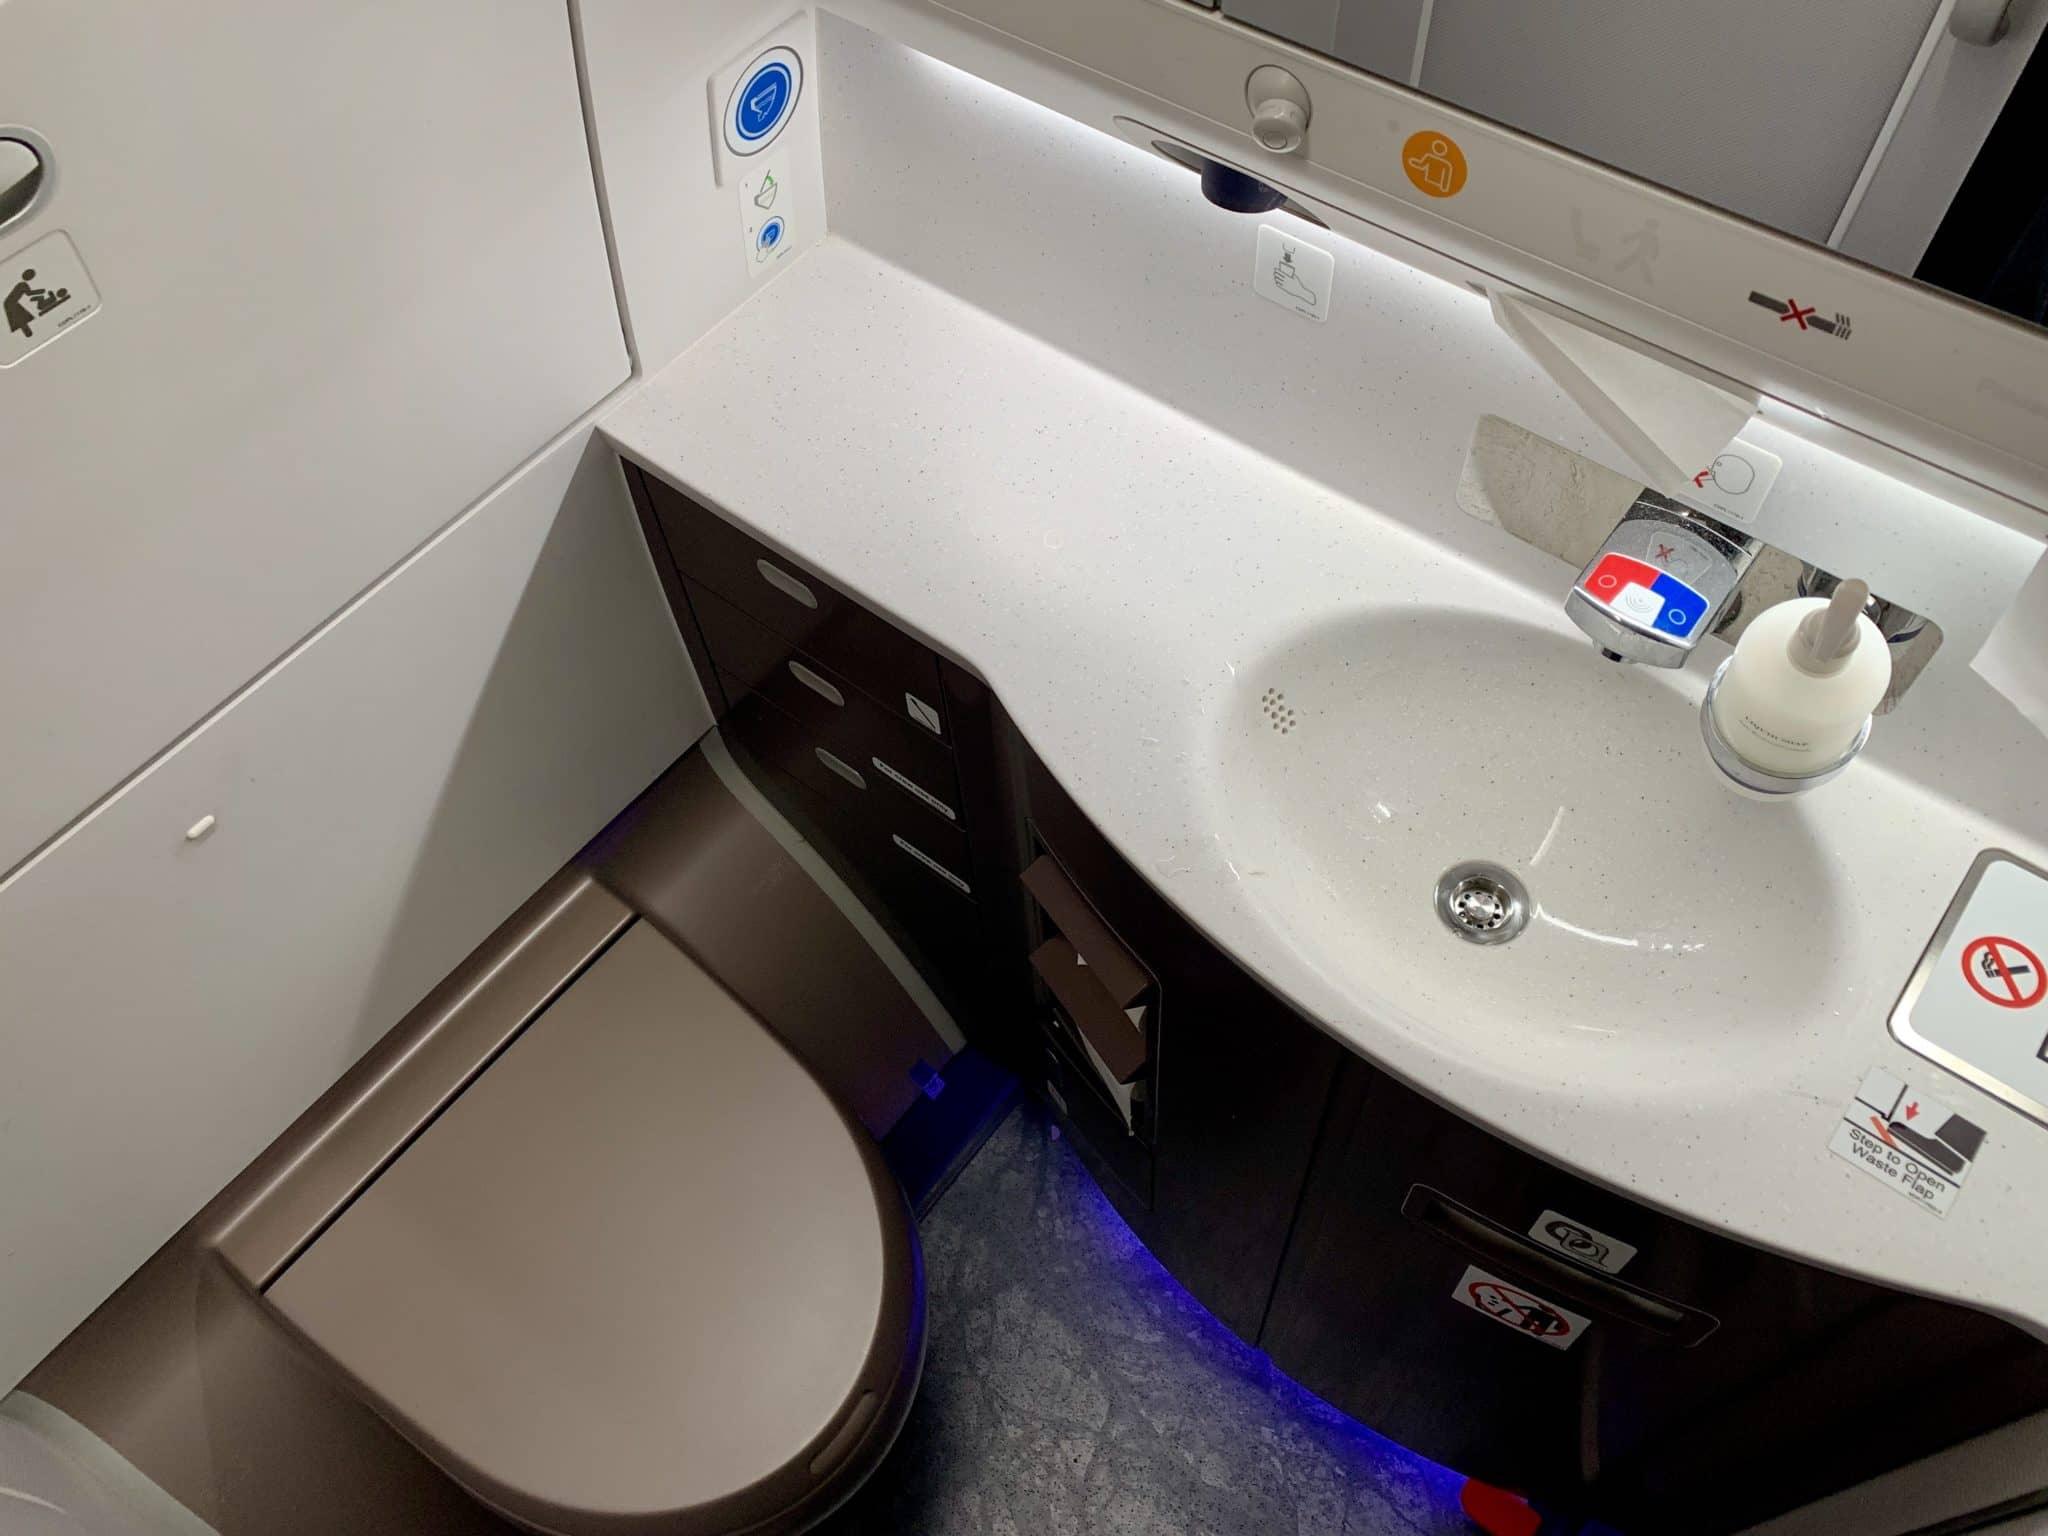 Singapore Airlines Business Class A350-900ULR WC